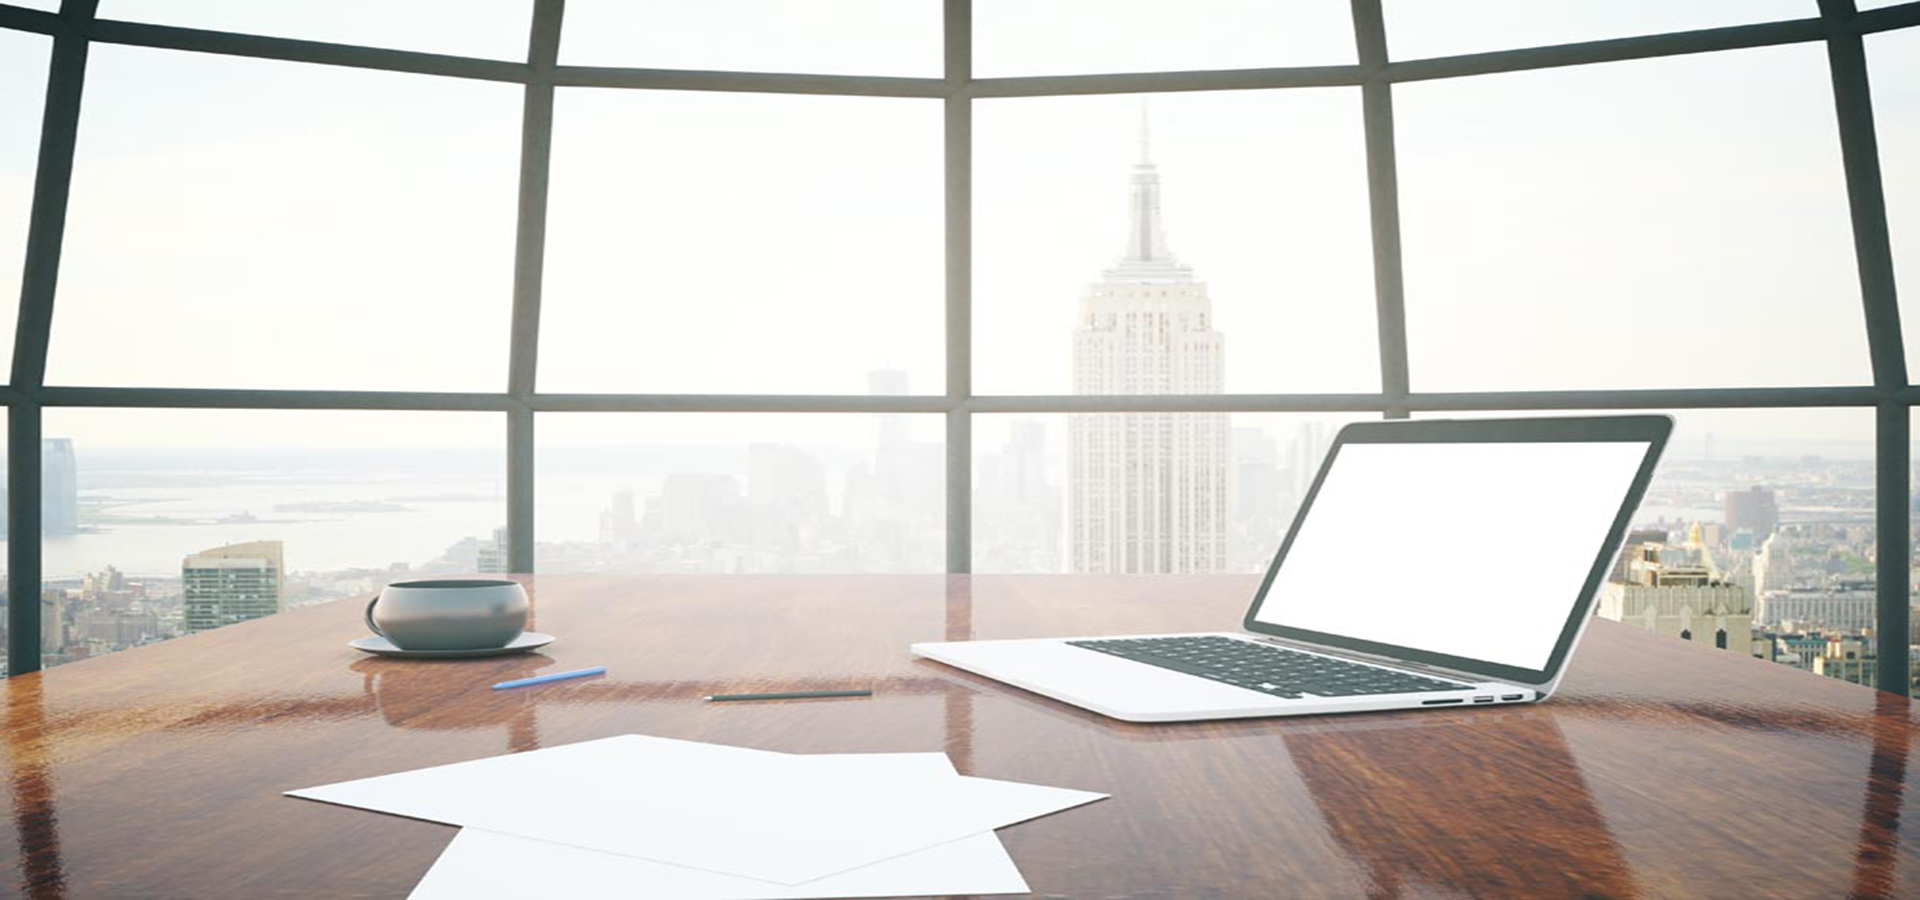 business office background  business  office  desk